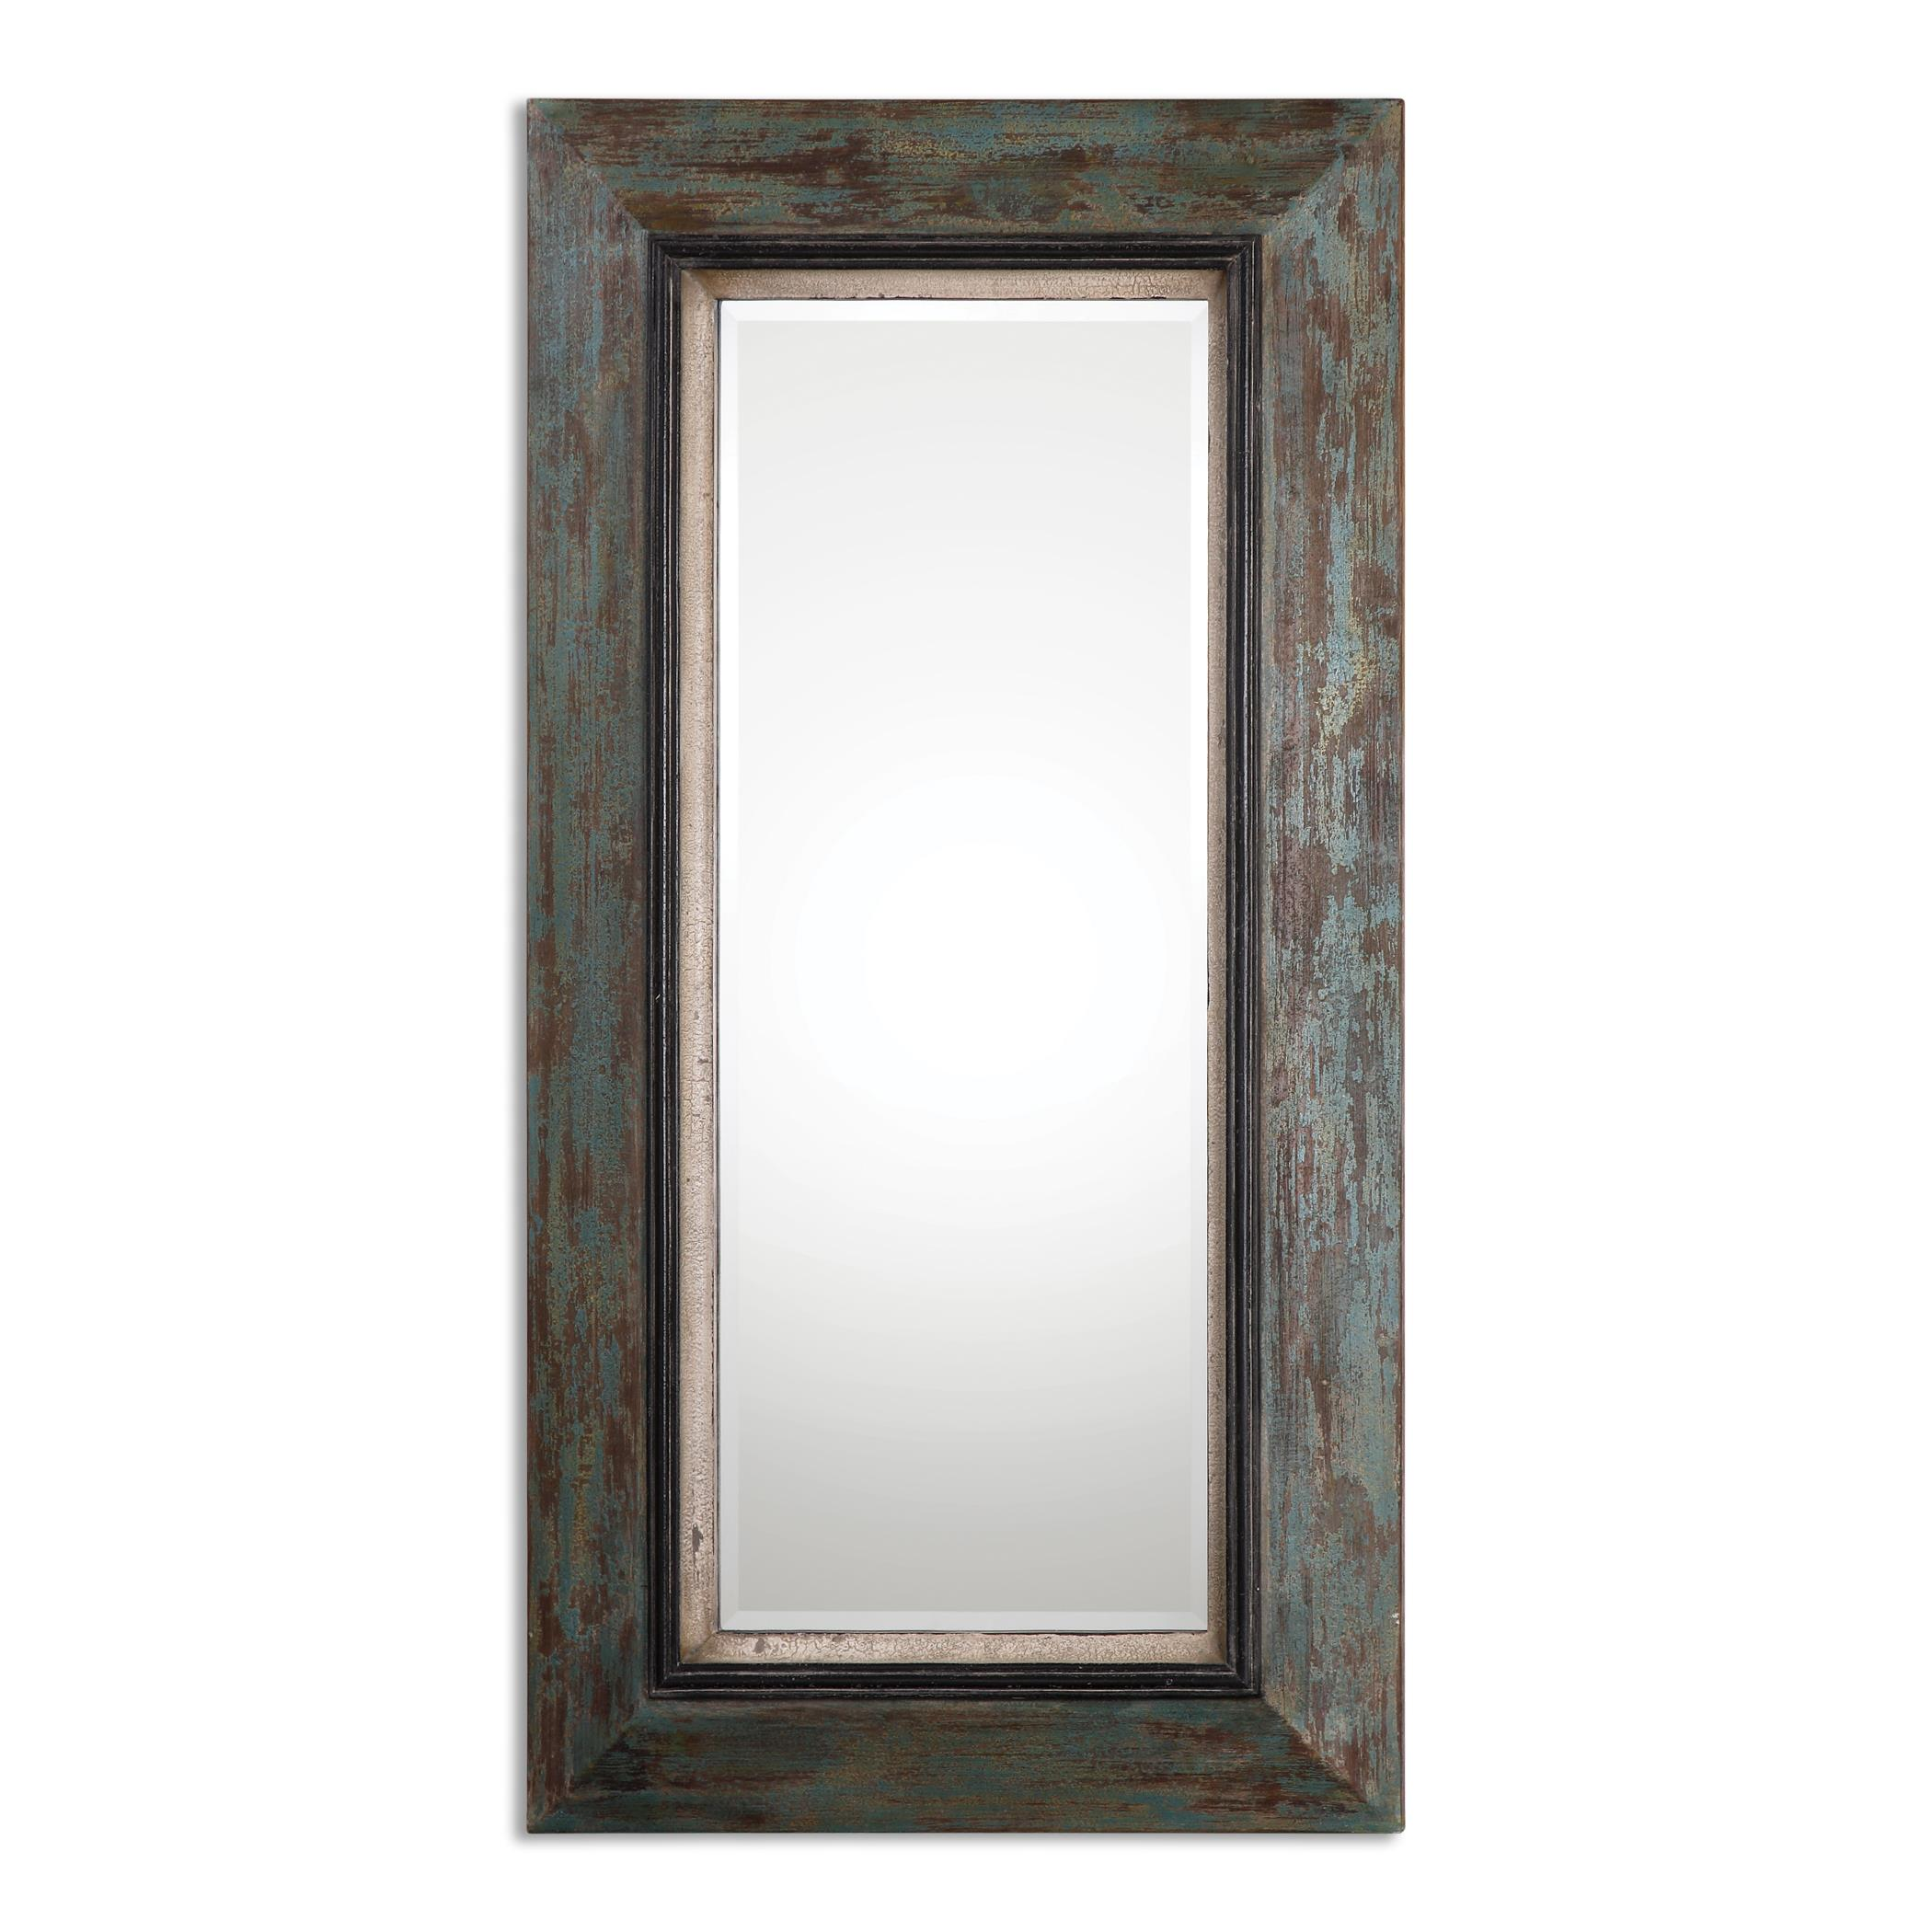 Uttermost Mirrors Bronwen Distressed Leaner Mirror - Item Number: 13930